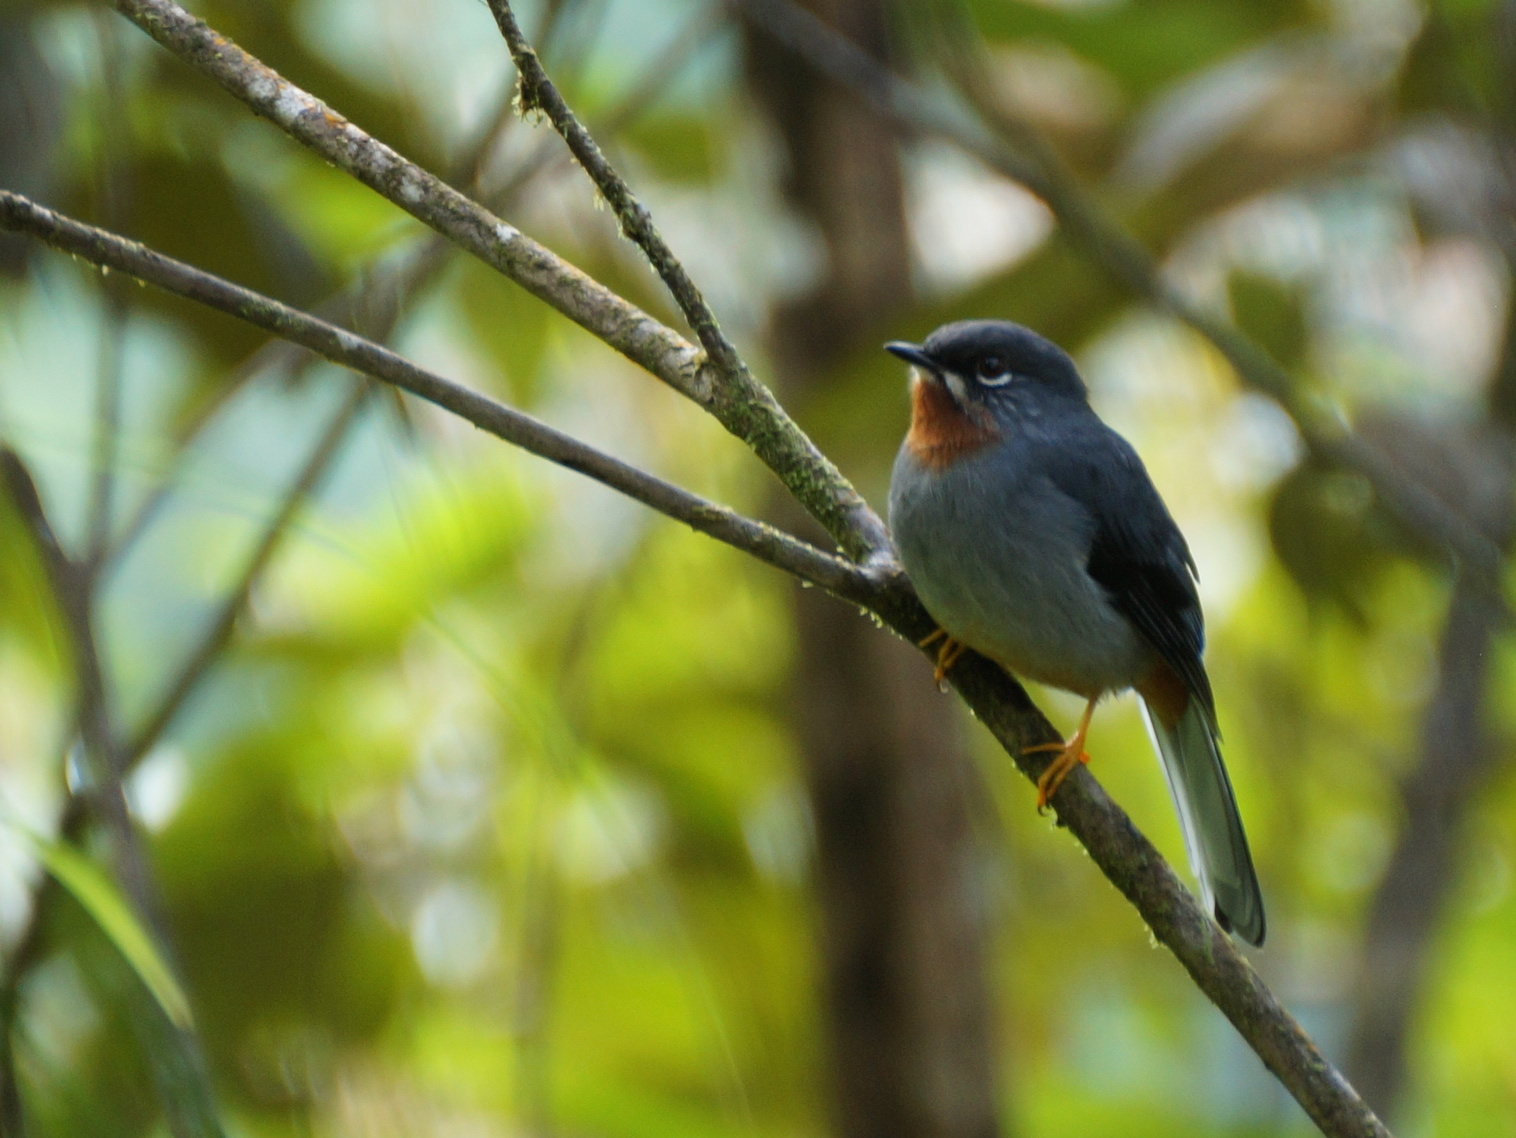 Rufous-throated Solitaire, Credit: Ed Drewitt